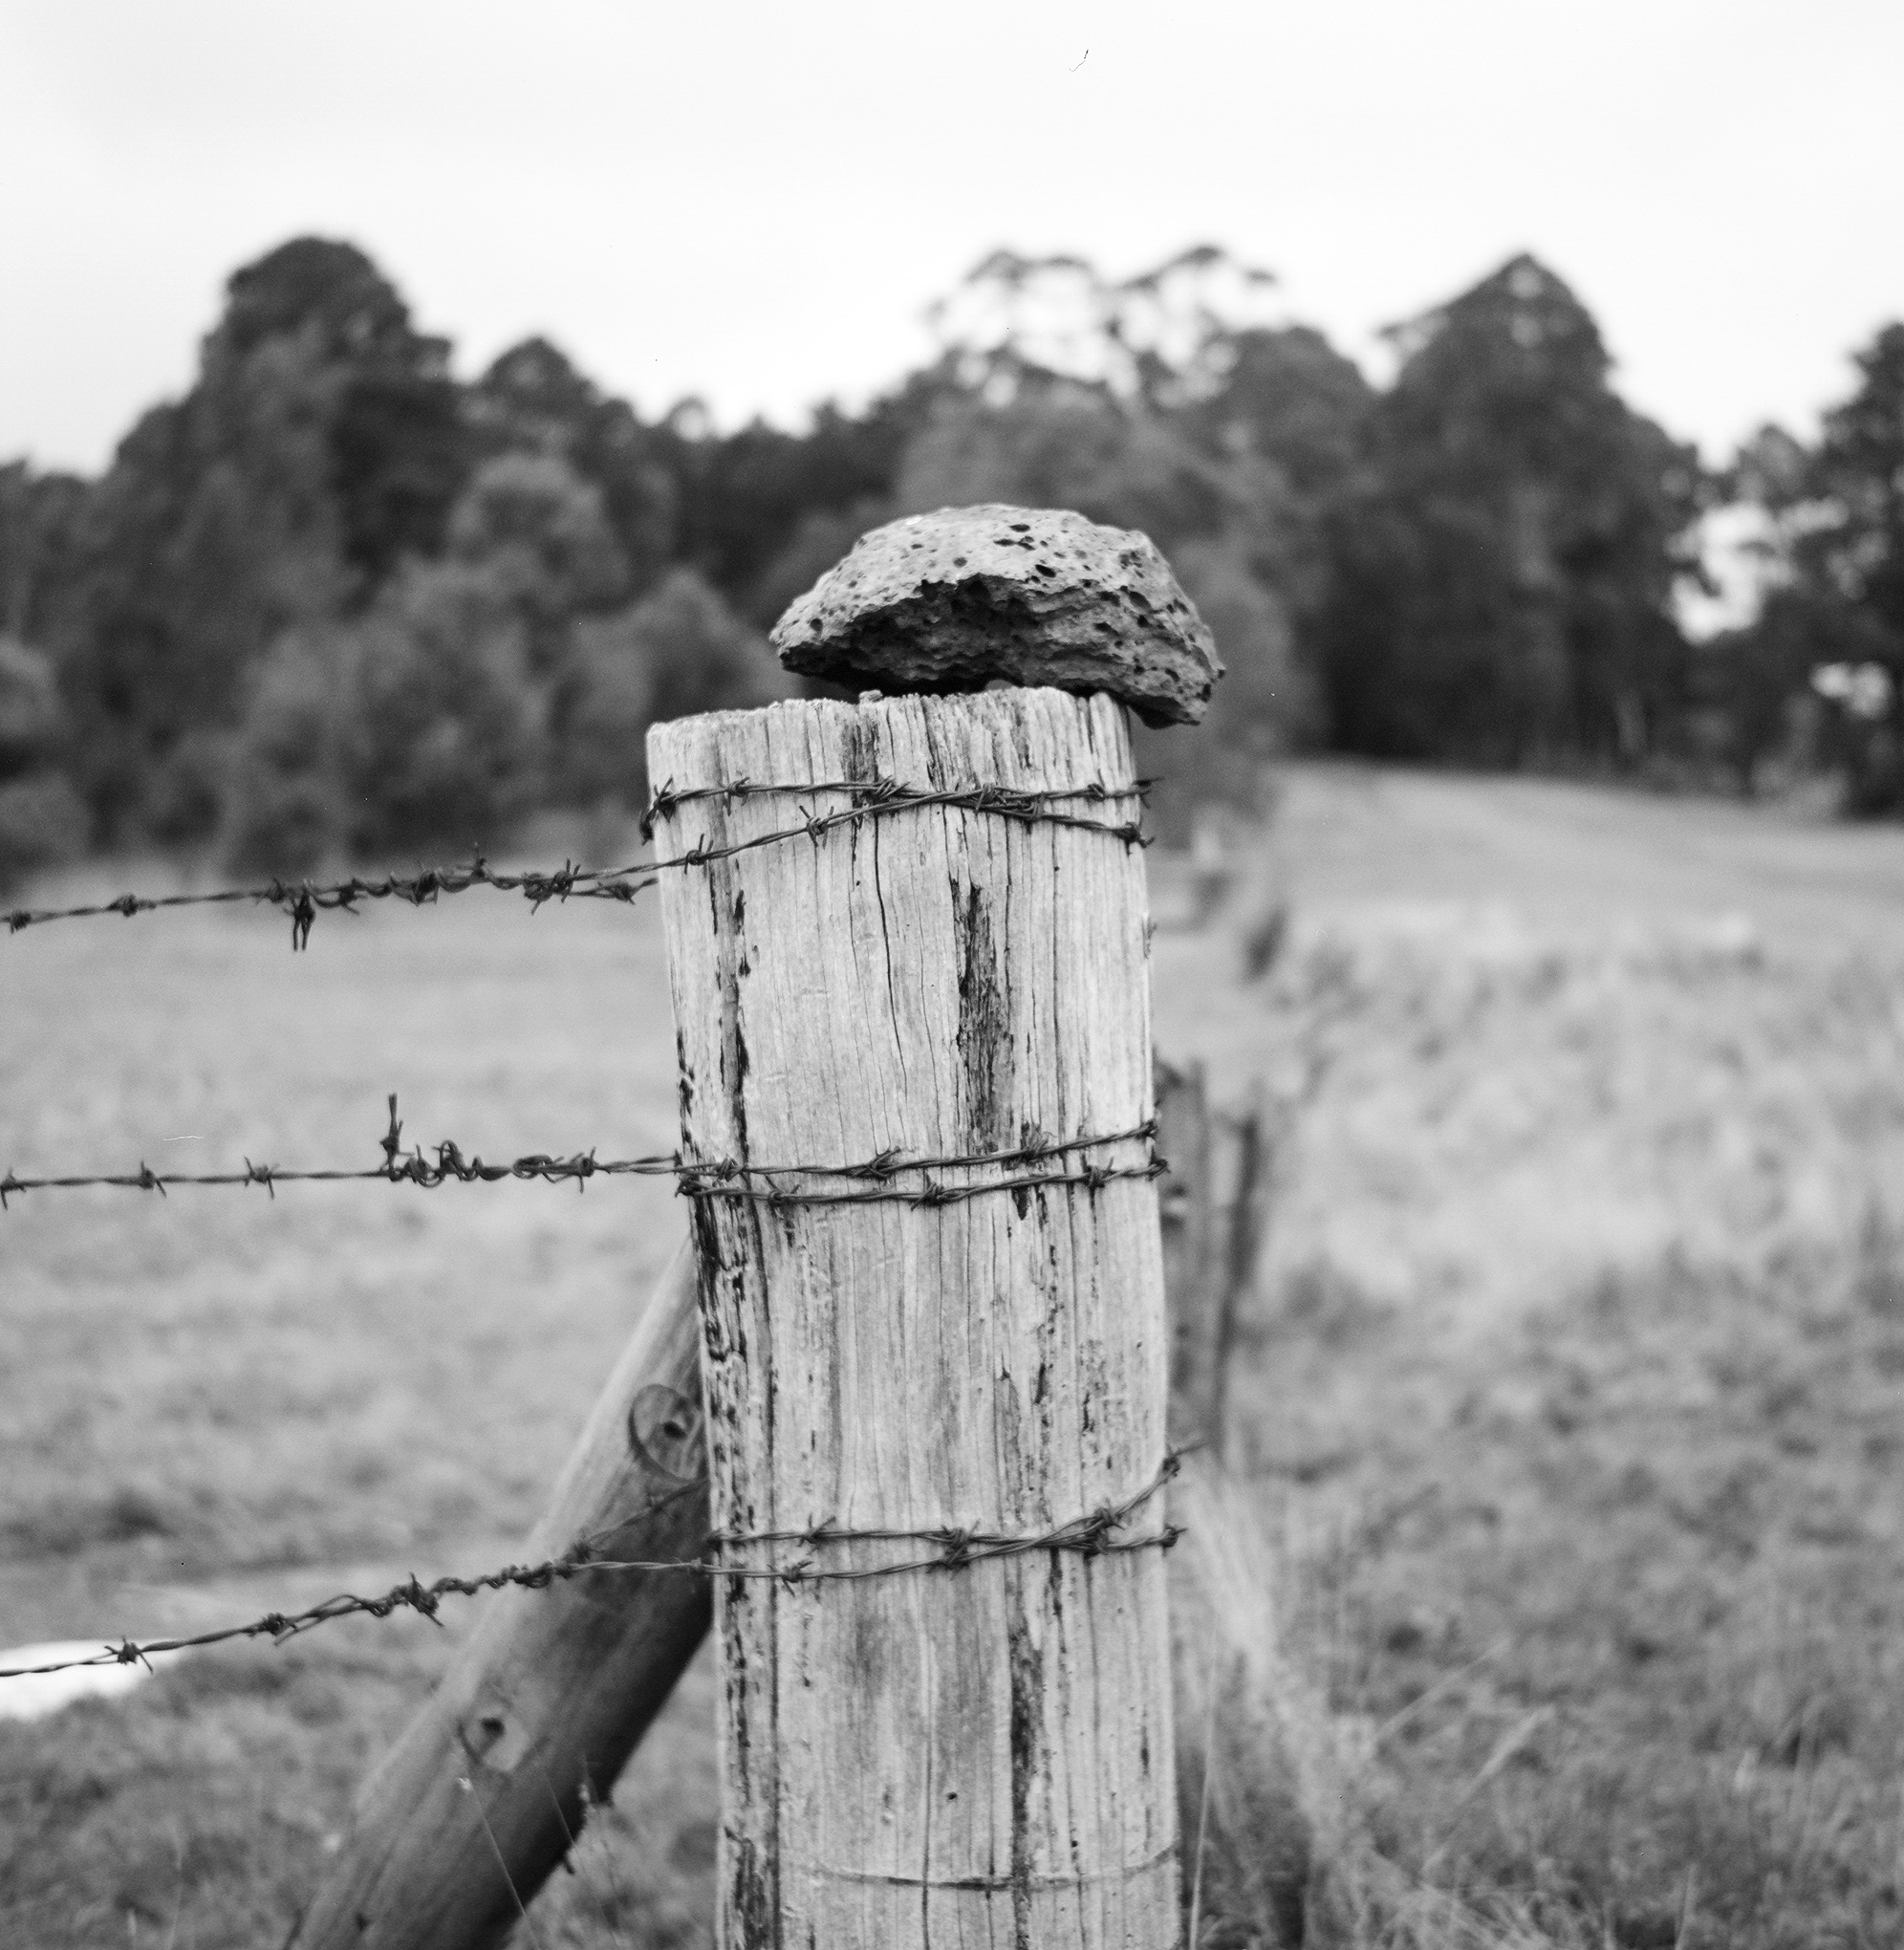 fences barbed wire